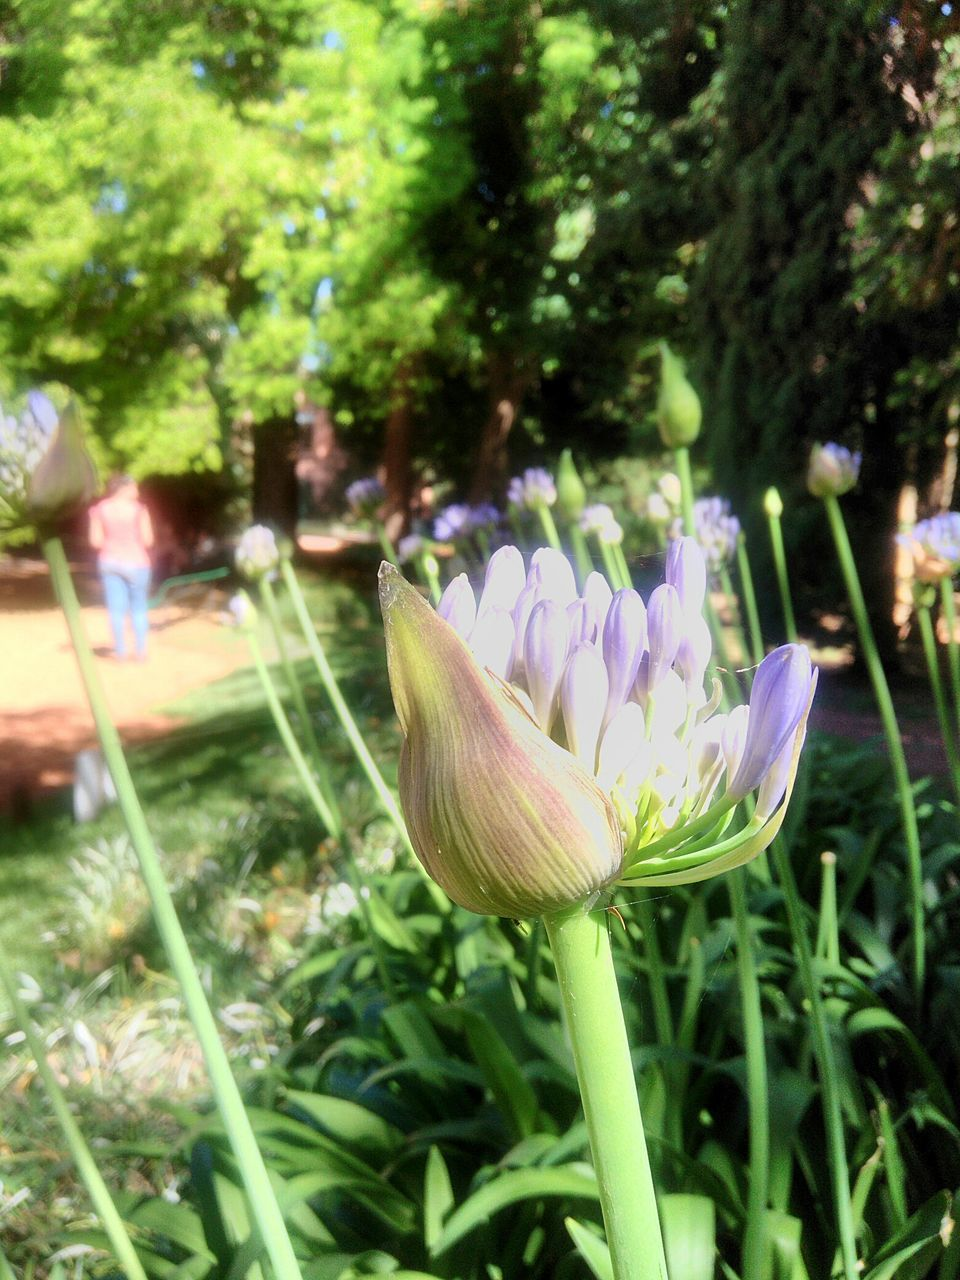 flower, fragility, growth, petal, nature, freshness, beauty in nature, flower head, plant, close-up, green color, focus on foreground, day, outdoors, no people, blooming, grass